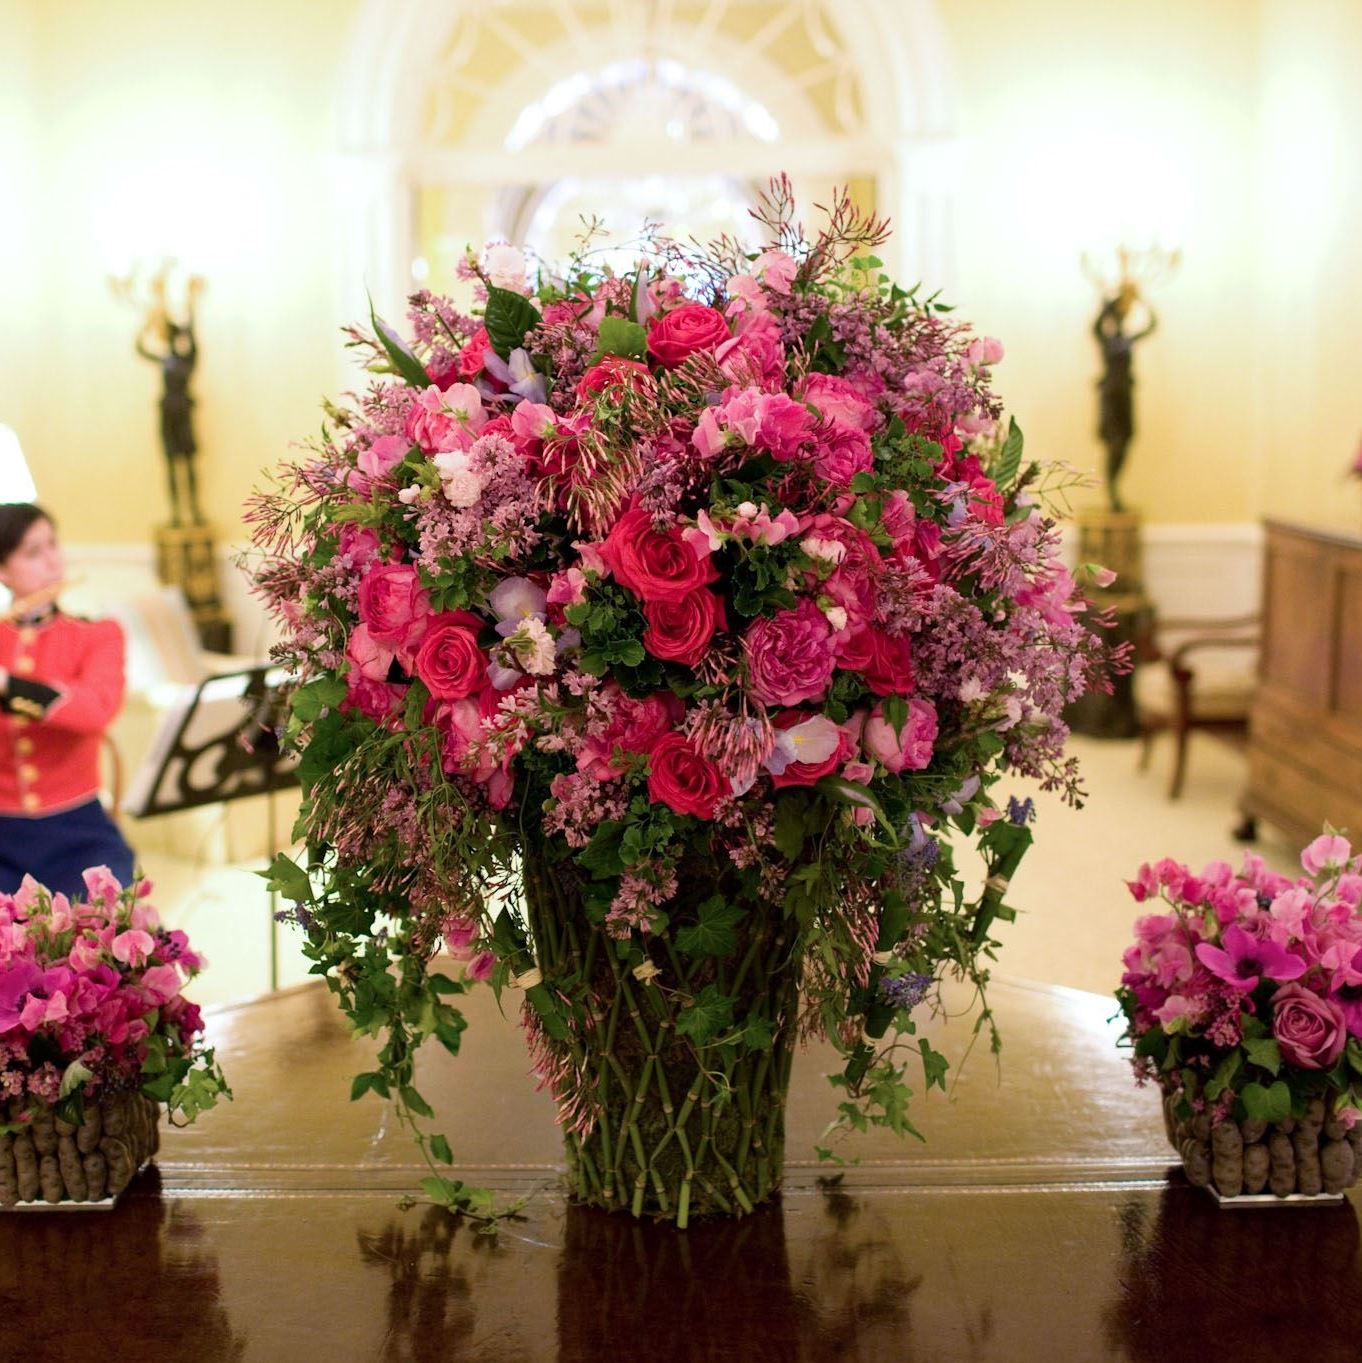 Laura Dowling Former White House Florist Turned Author Visits With